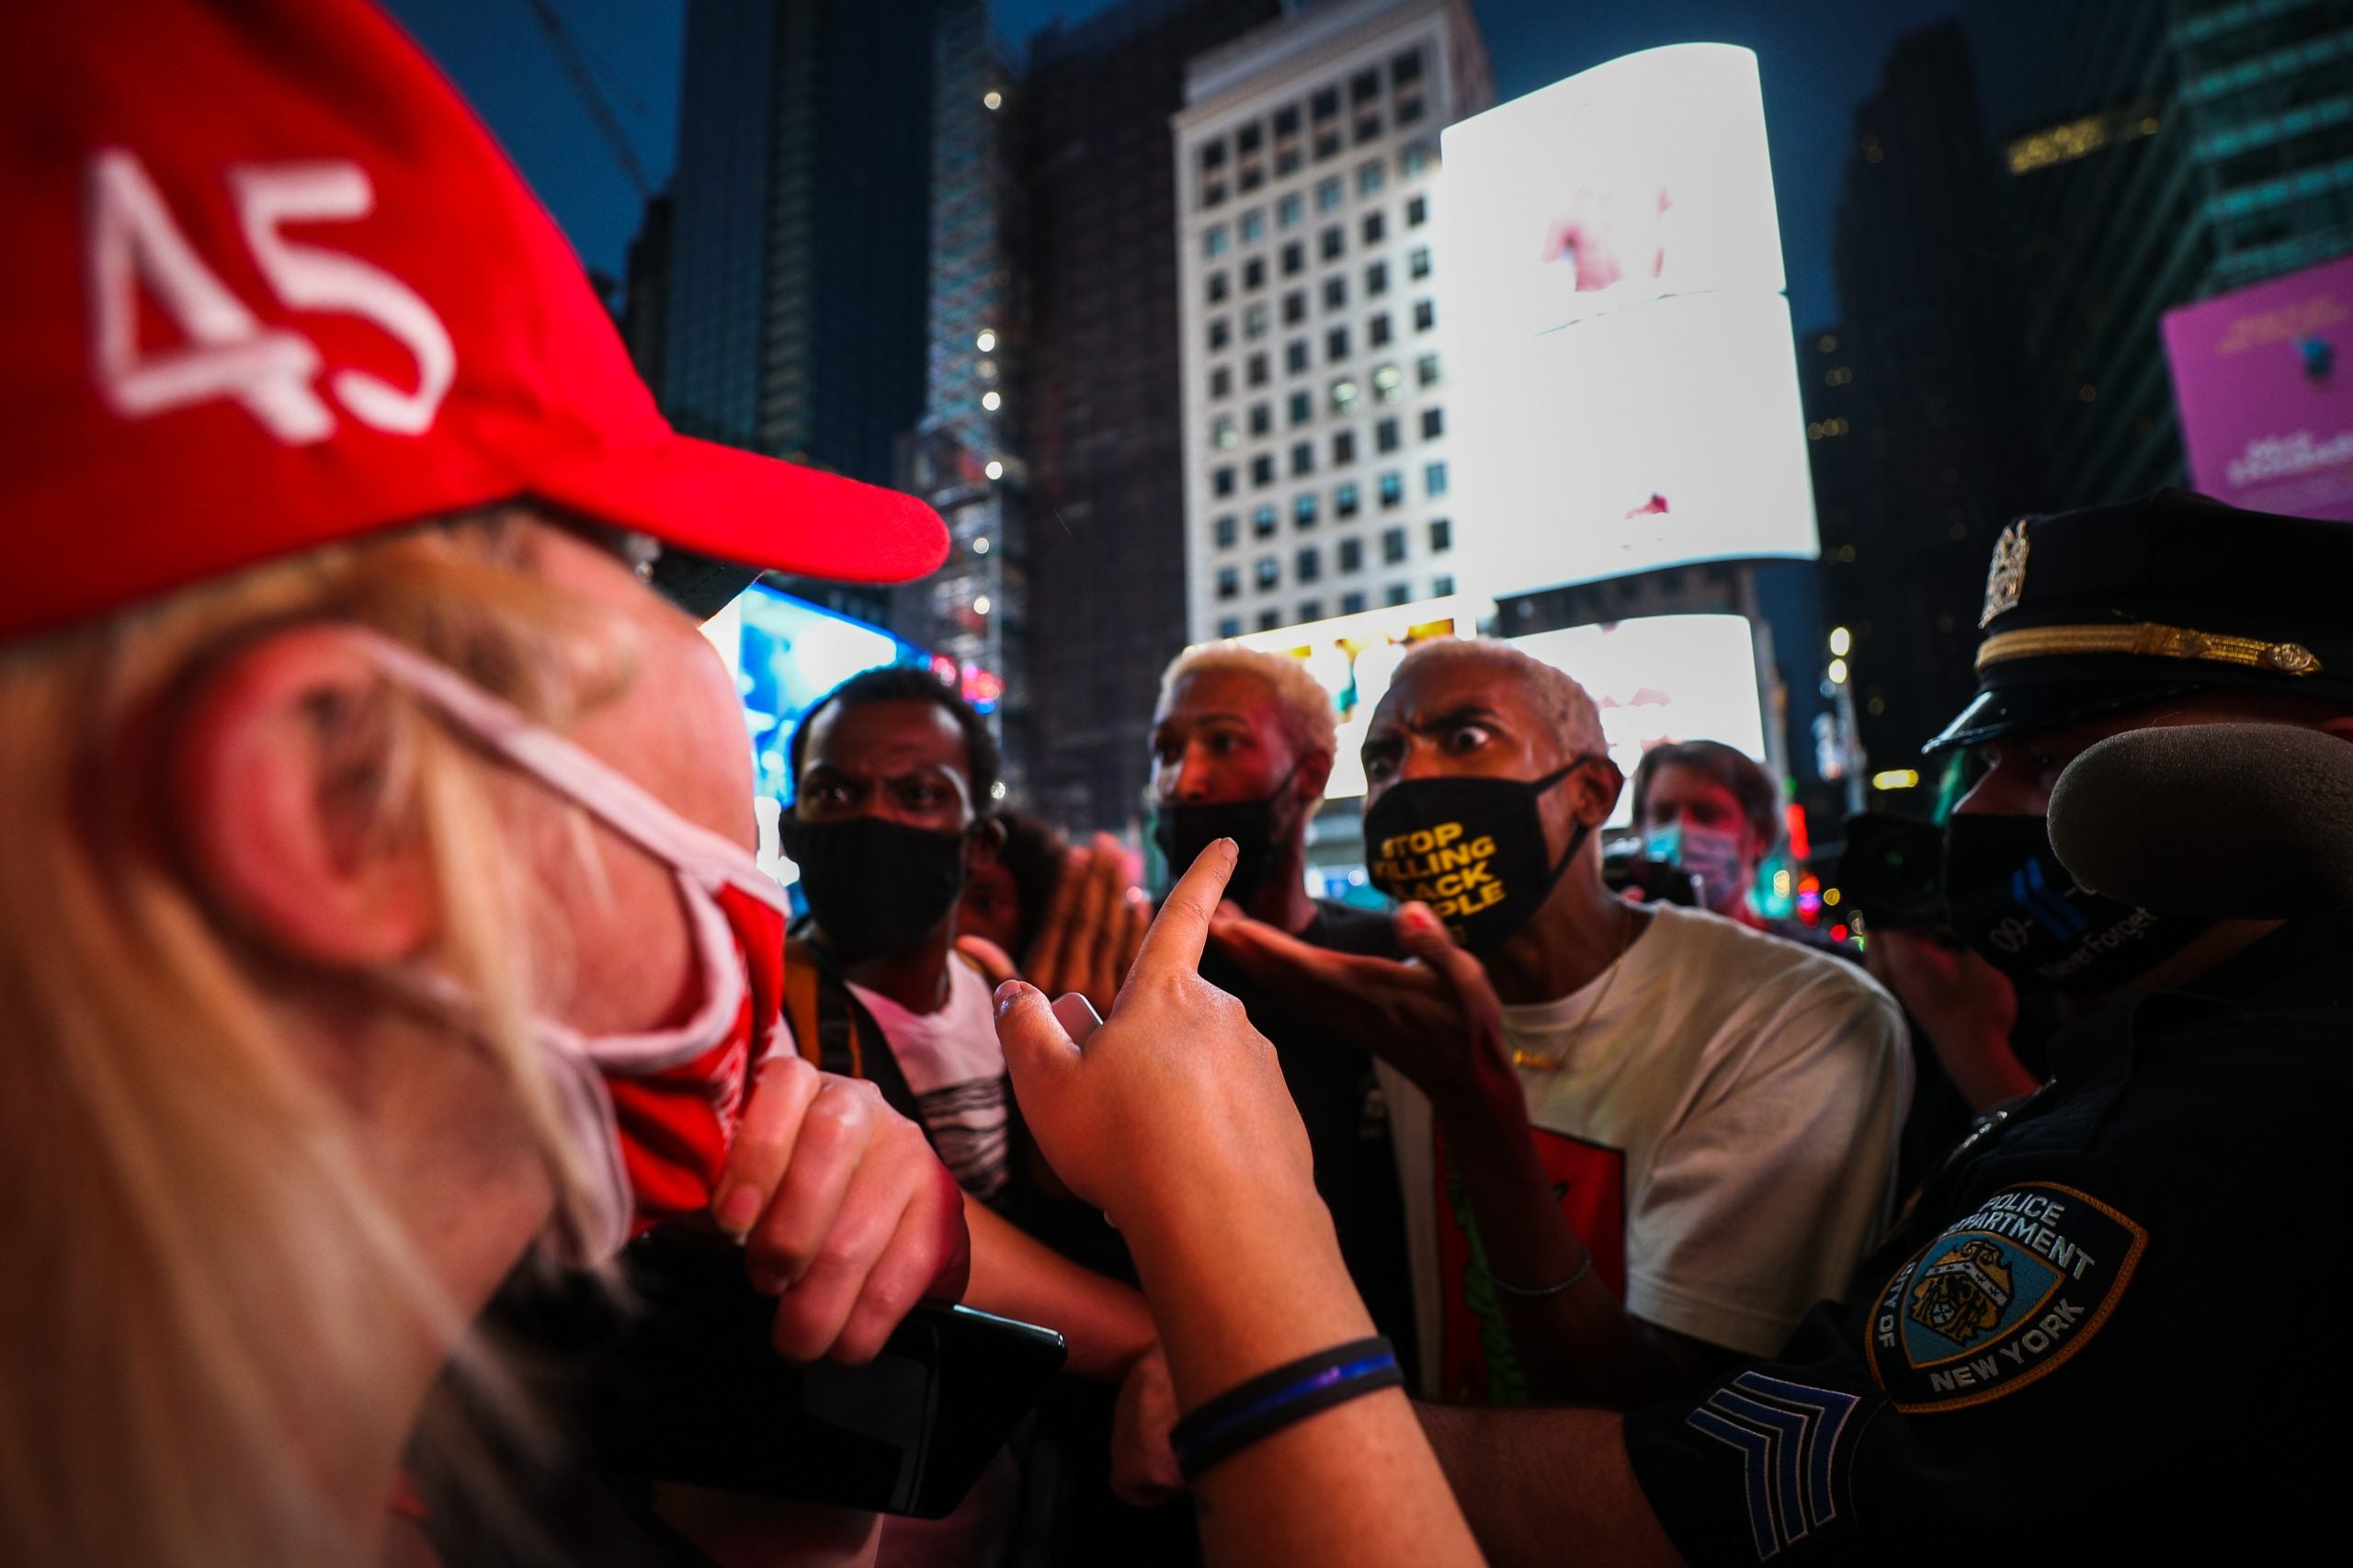 A group of protesters clash in Times Square